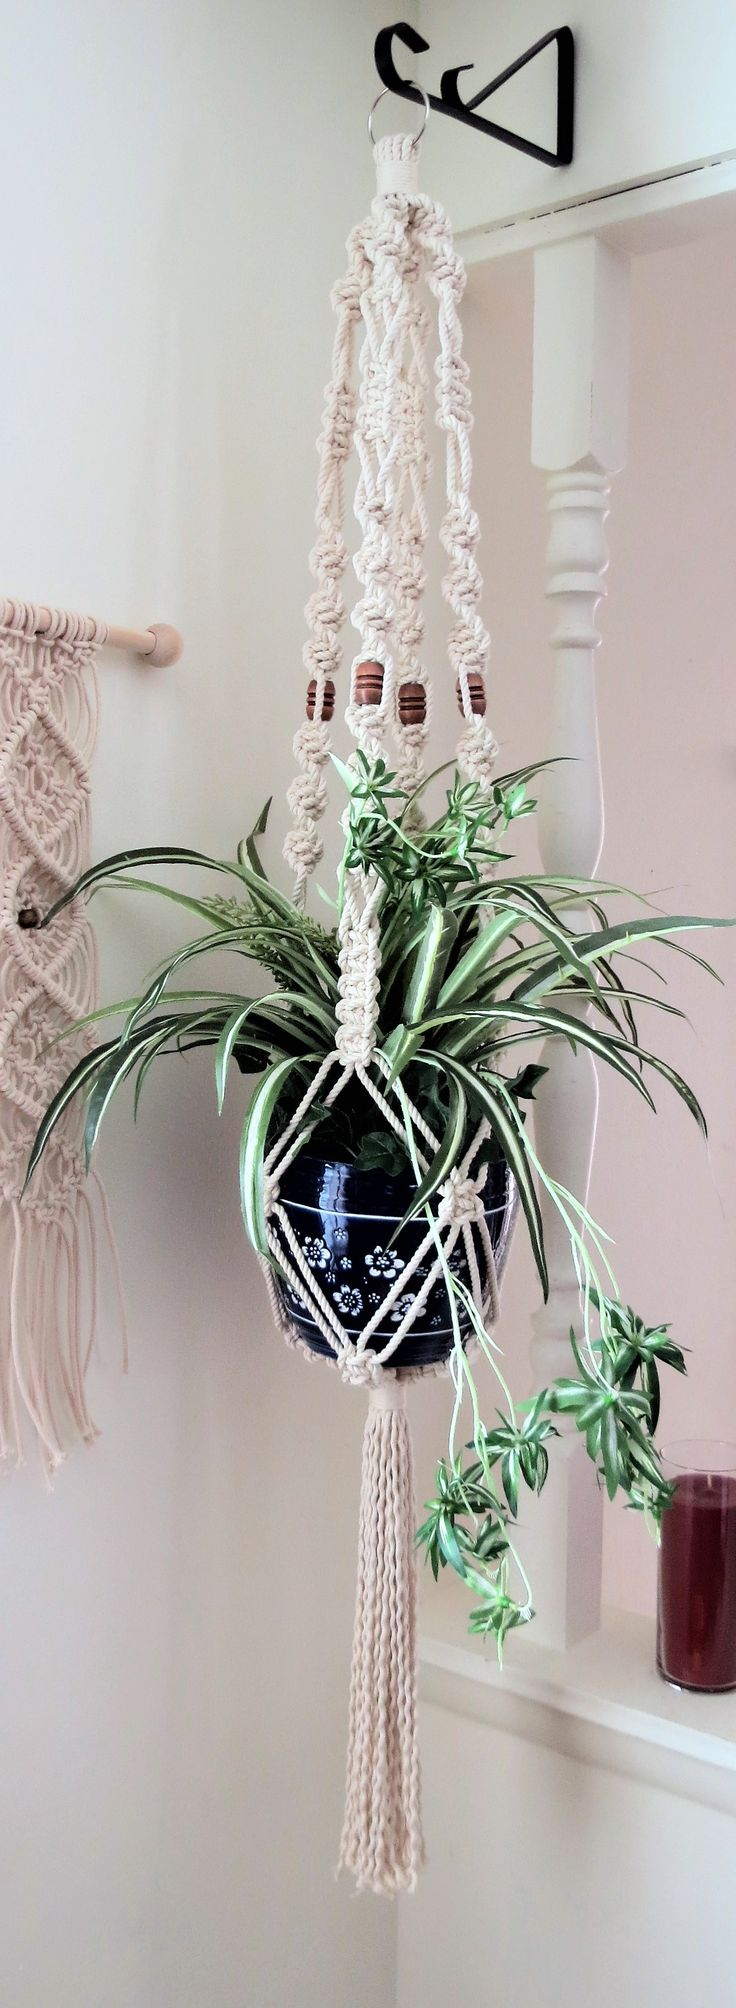 Give your plants a beautiful home with this White Cotton Macrame Plant Holder Hanger.  Rope Hanging Planter, Modern Hippie 70s Boho Pot Hanger Holder, Large Thick Beaded Ceiling Planter, boho home decor, modern living room home decor, twist spiral  plant hangers, nautical decor, nautical rope decor, thick white cotton rope pot hanger